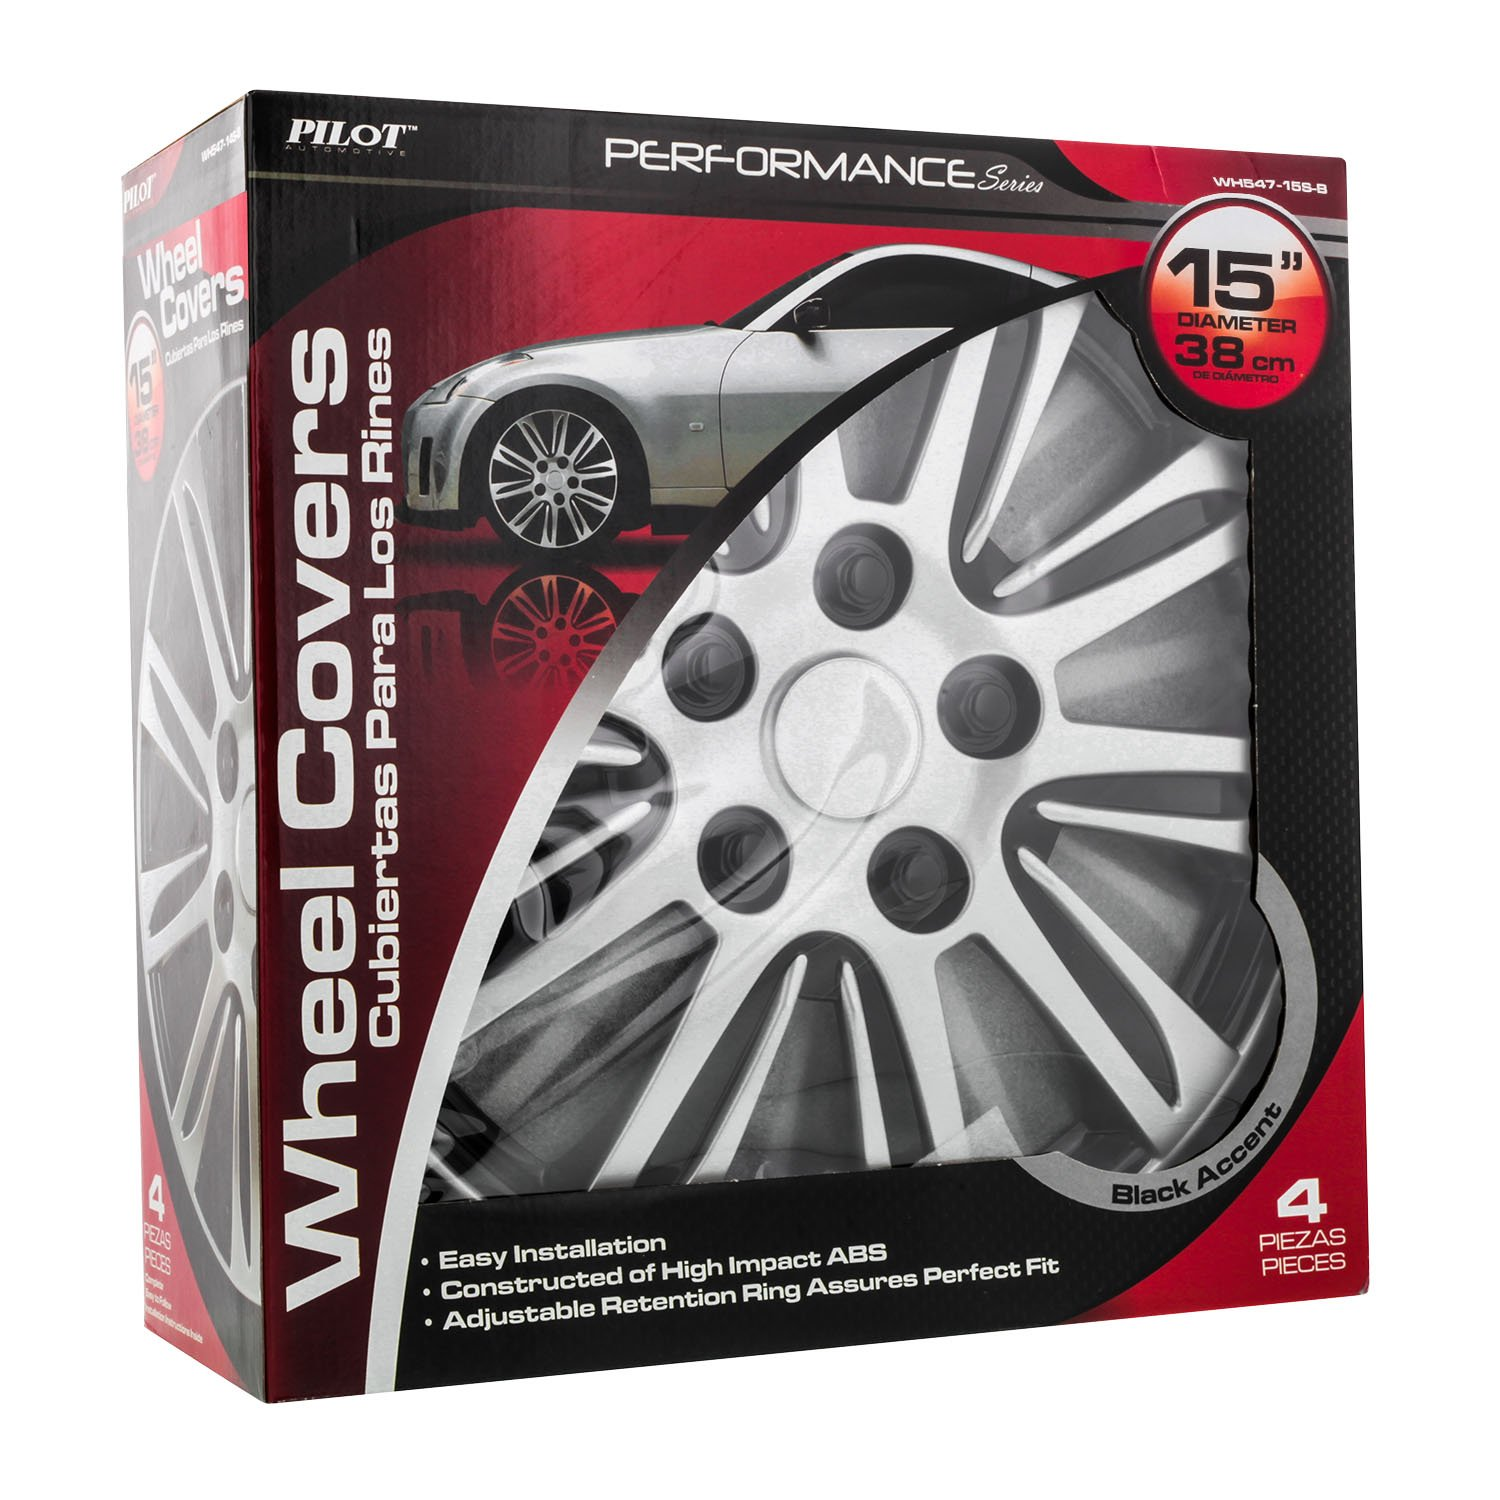 Pilot WH547-16S-B Universal Fit Premier Toyota Camry Style Silver 16 Inch Wheel Covers Set of 4